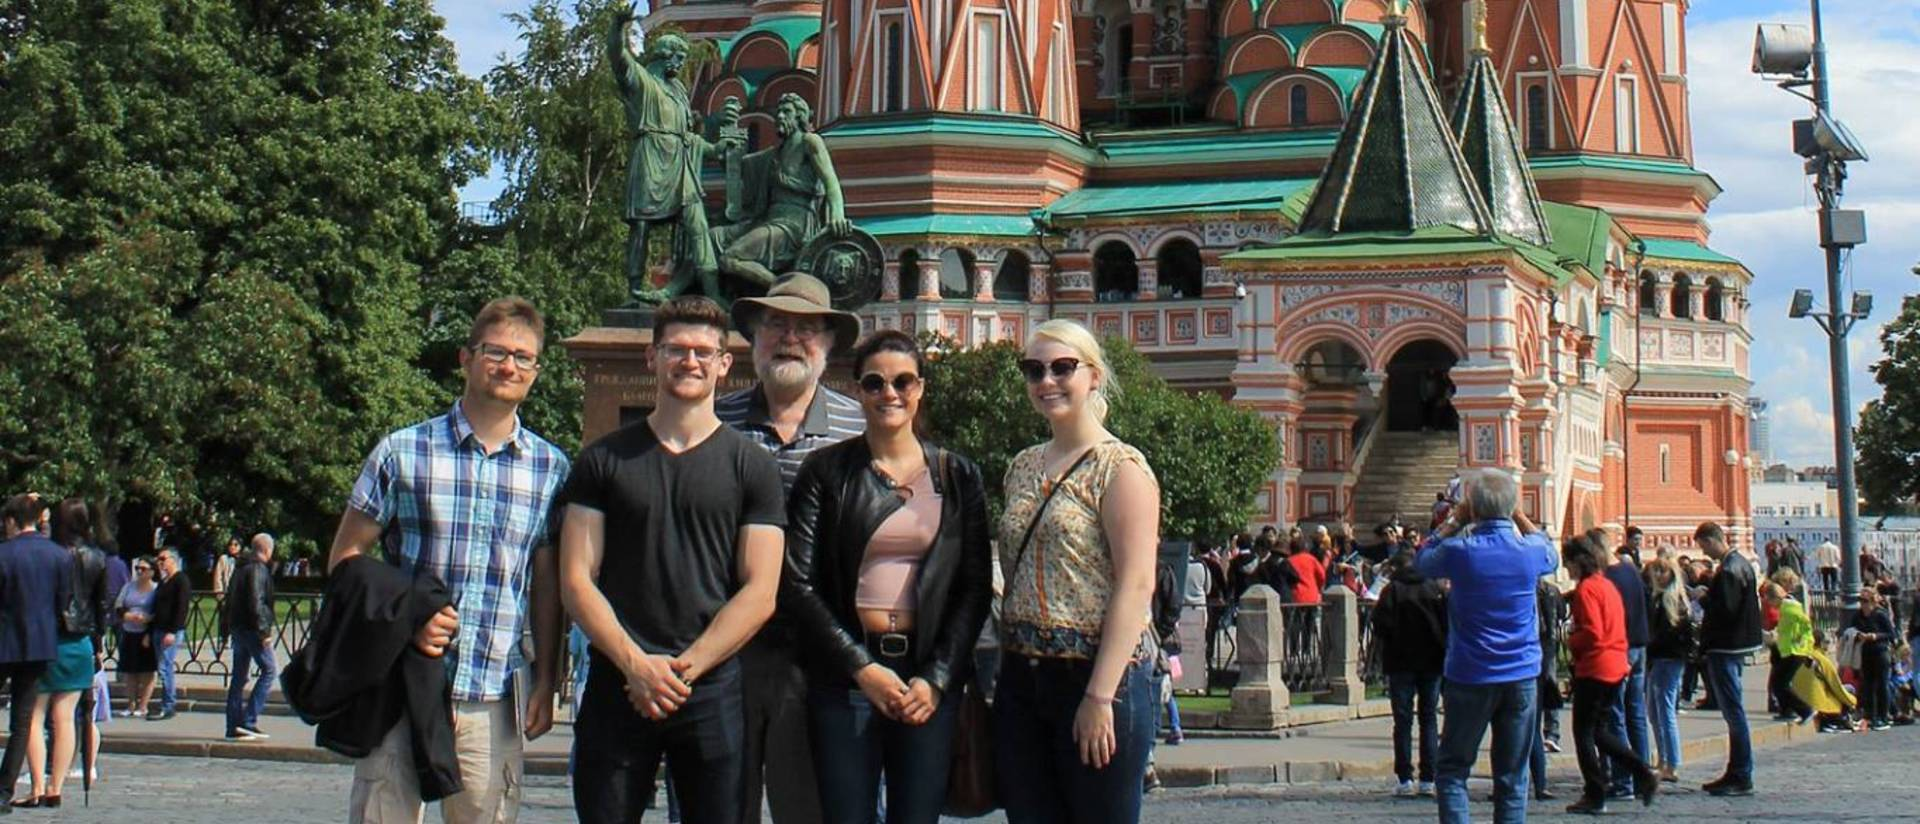 David Lewis and research student team in Russia 2017